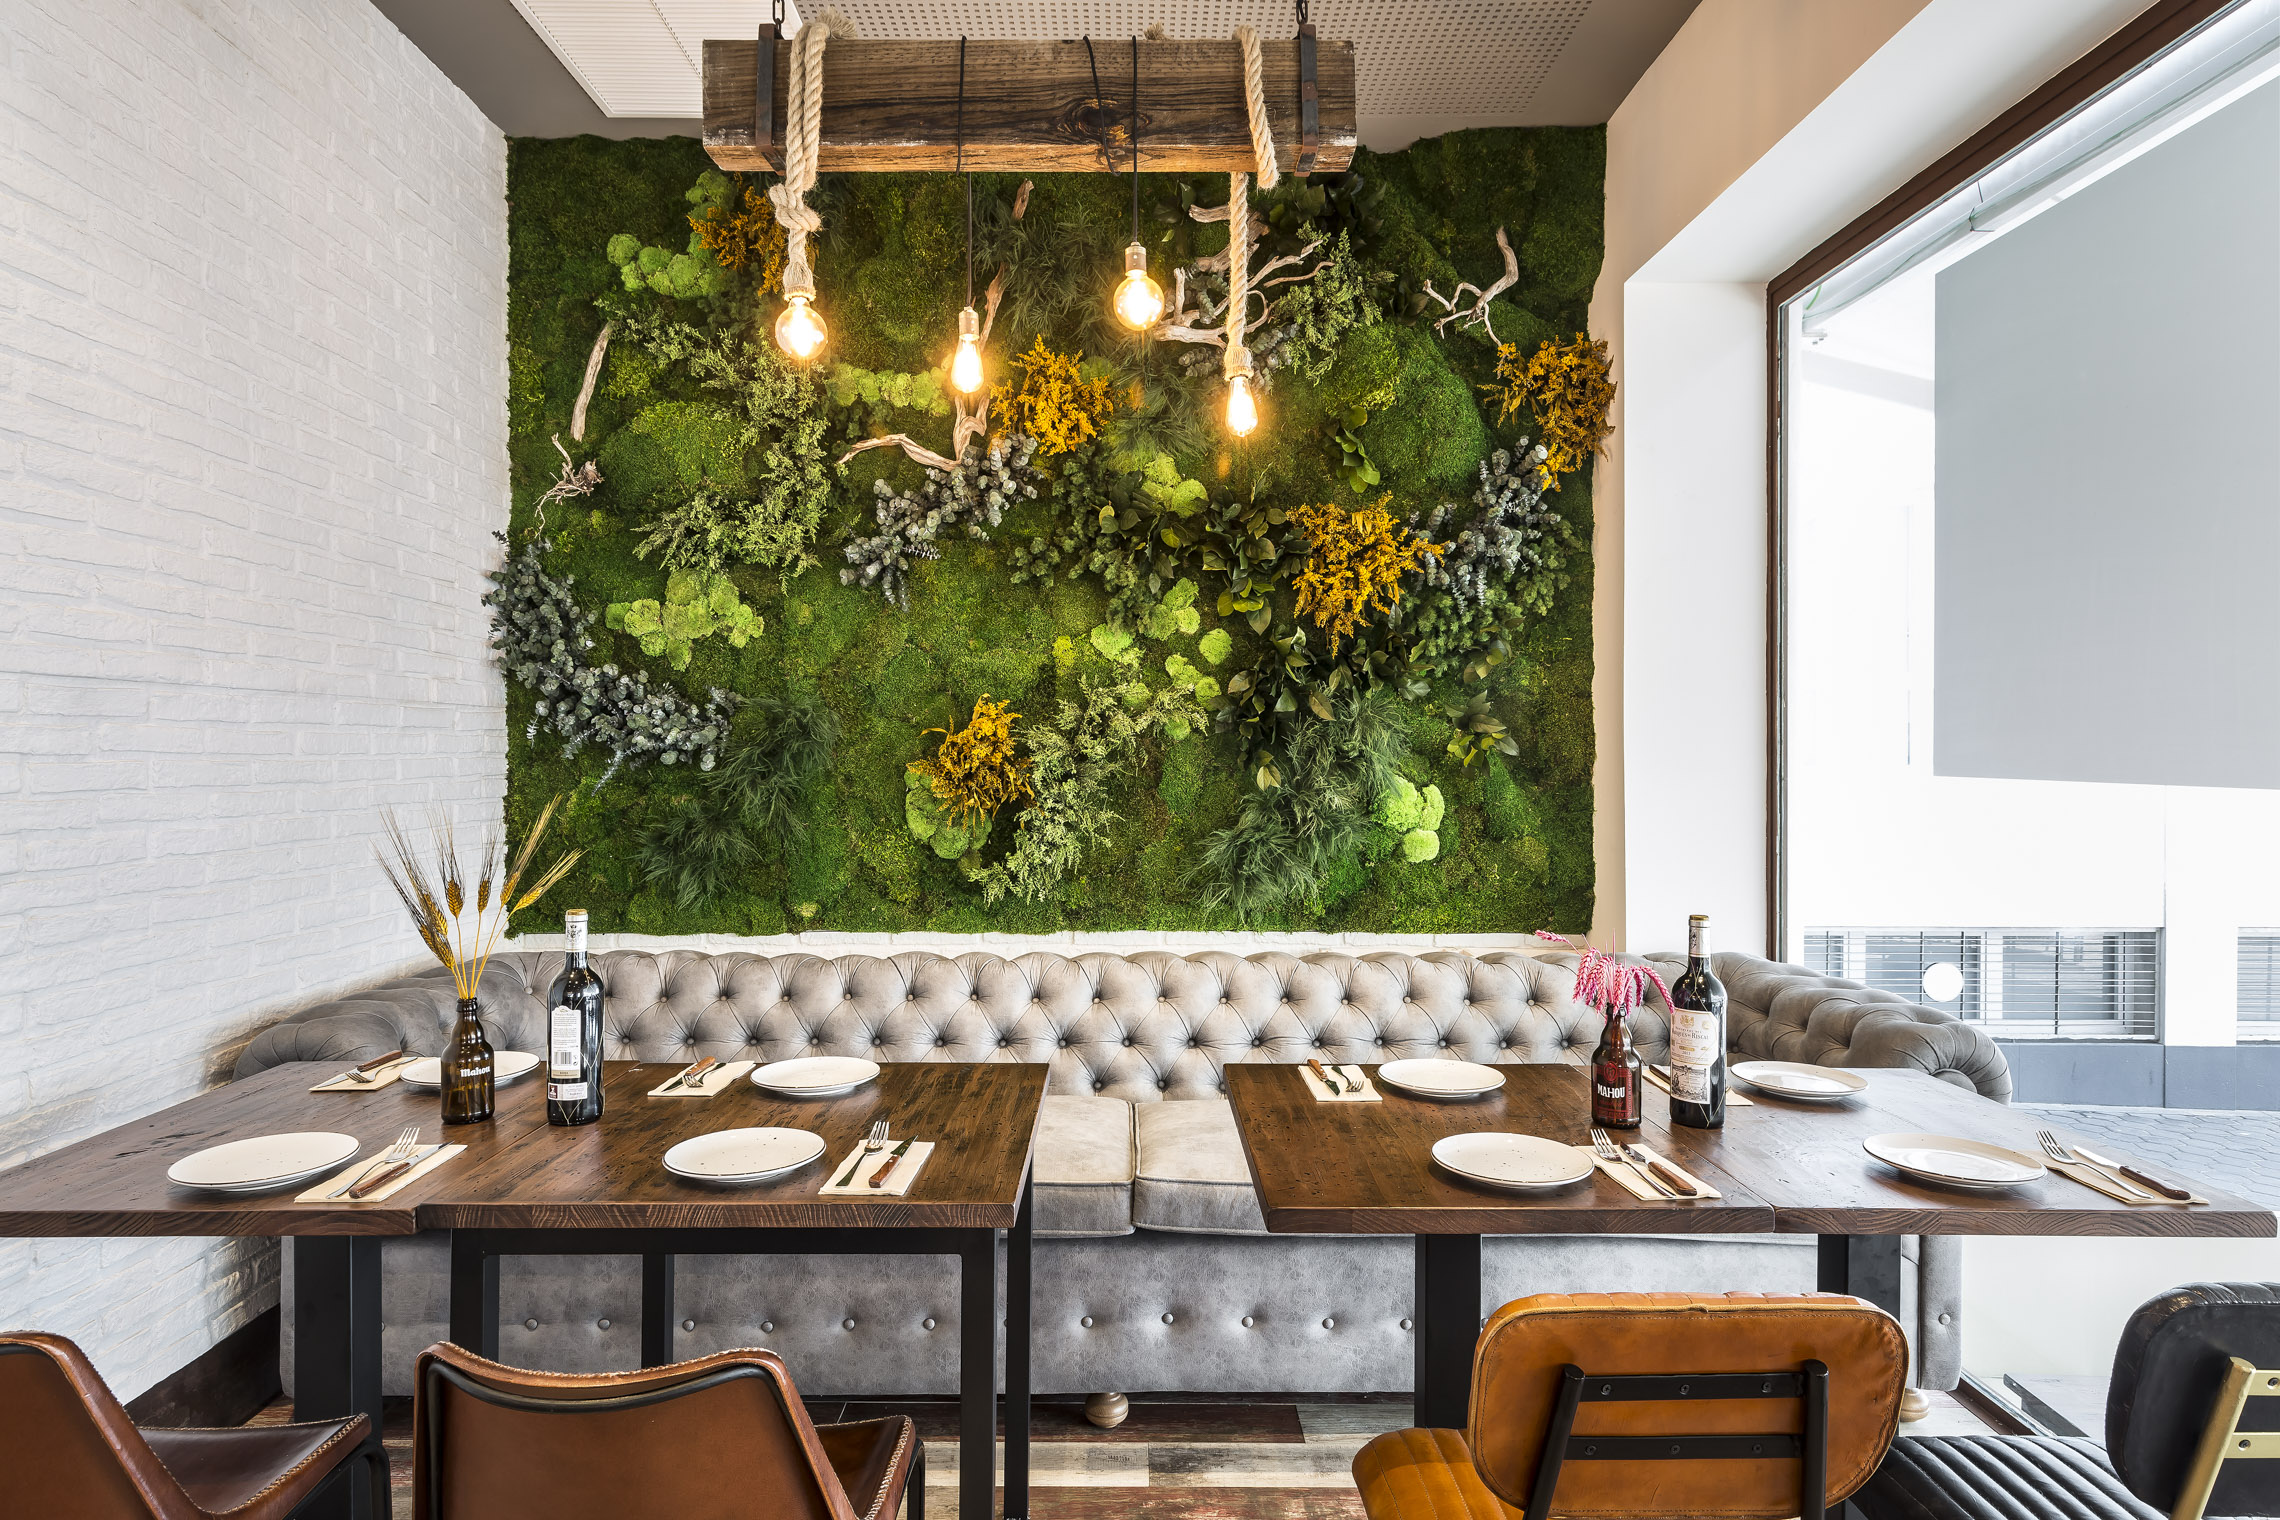 Pared vegetal restaurante sin mantenimiento